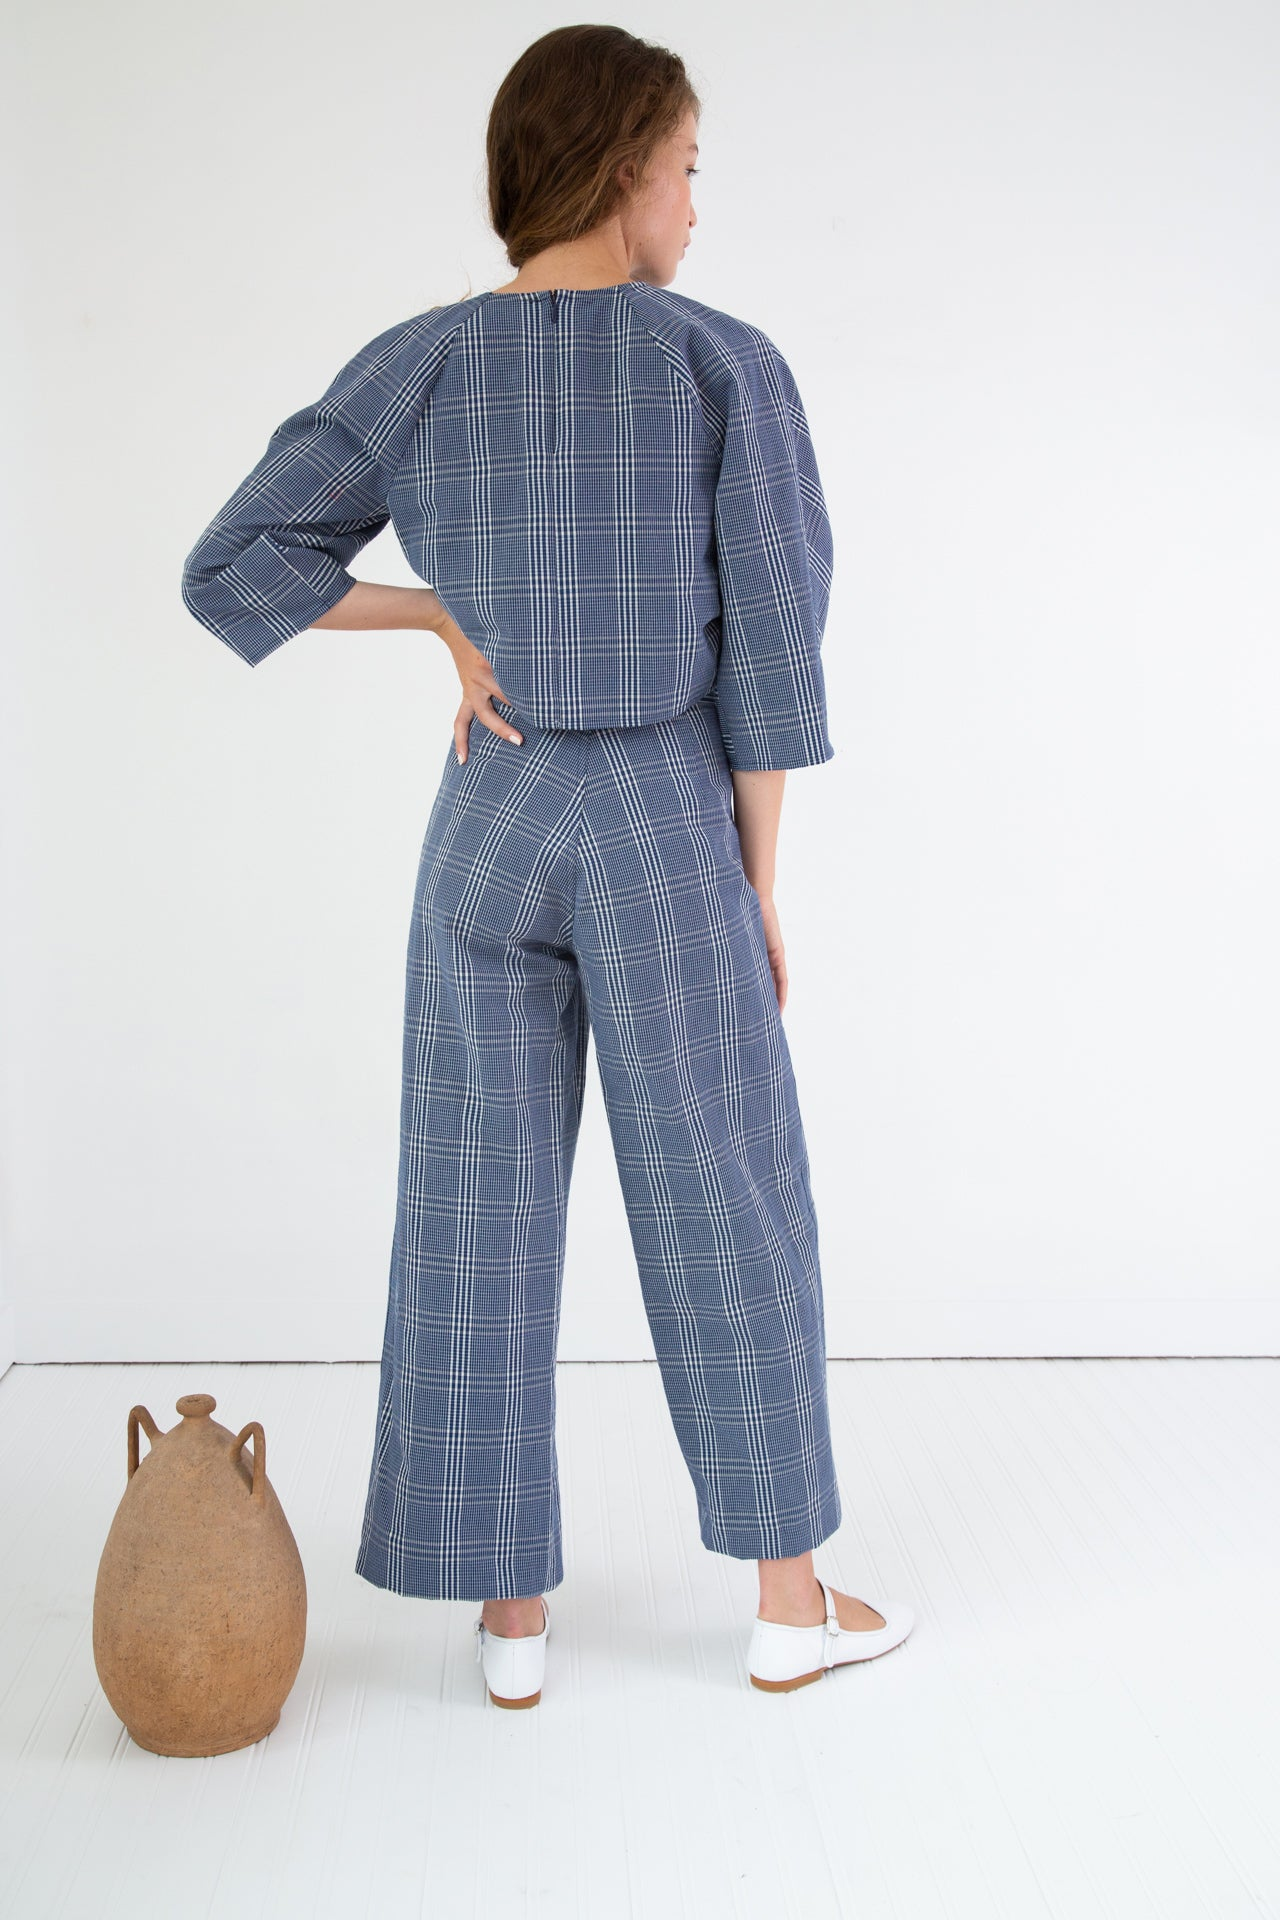 STEWART PANT | NAVY SEERSUCKER PLAID